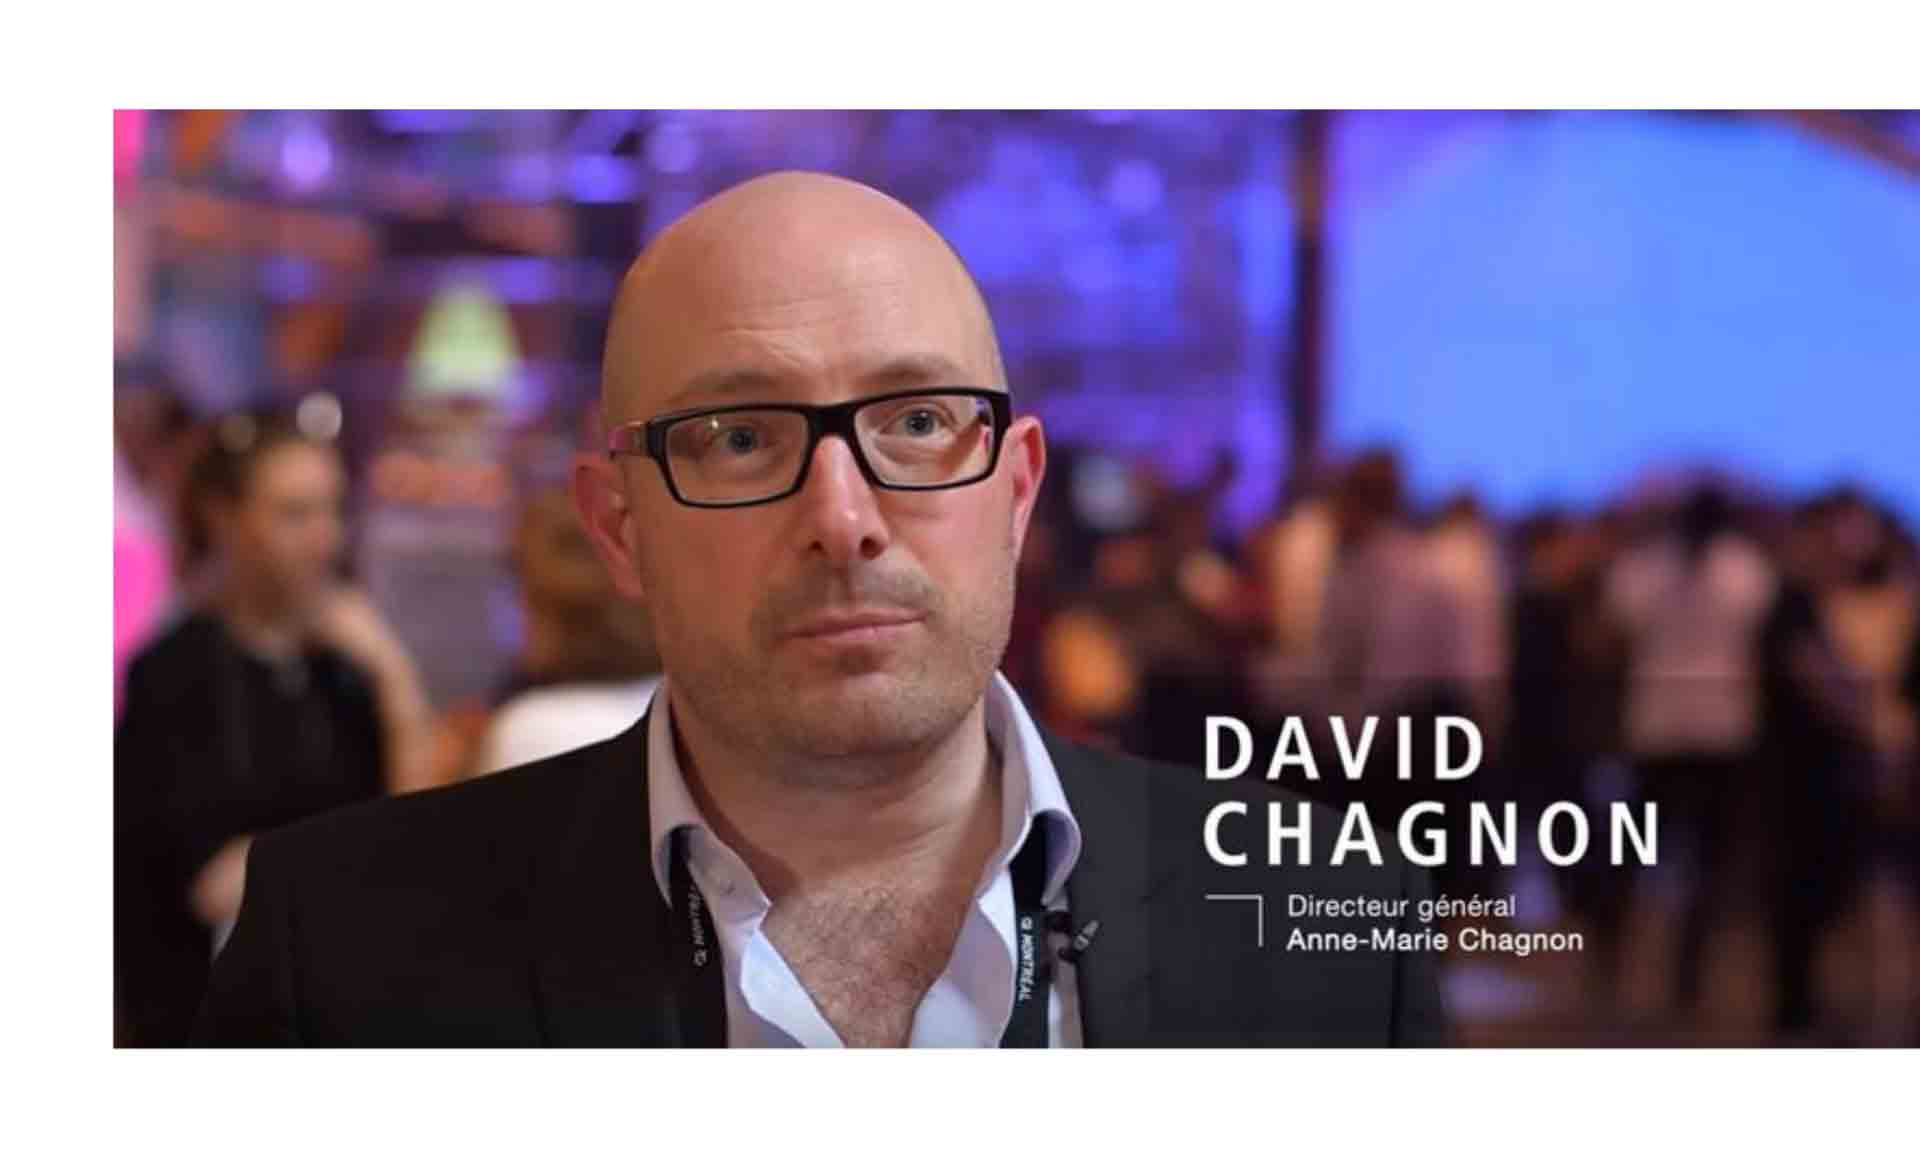 David Chagnon on Montreal's Innovation Program for SMB